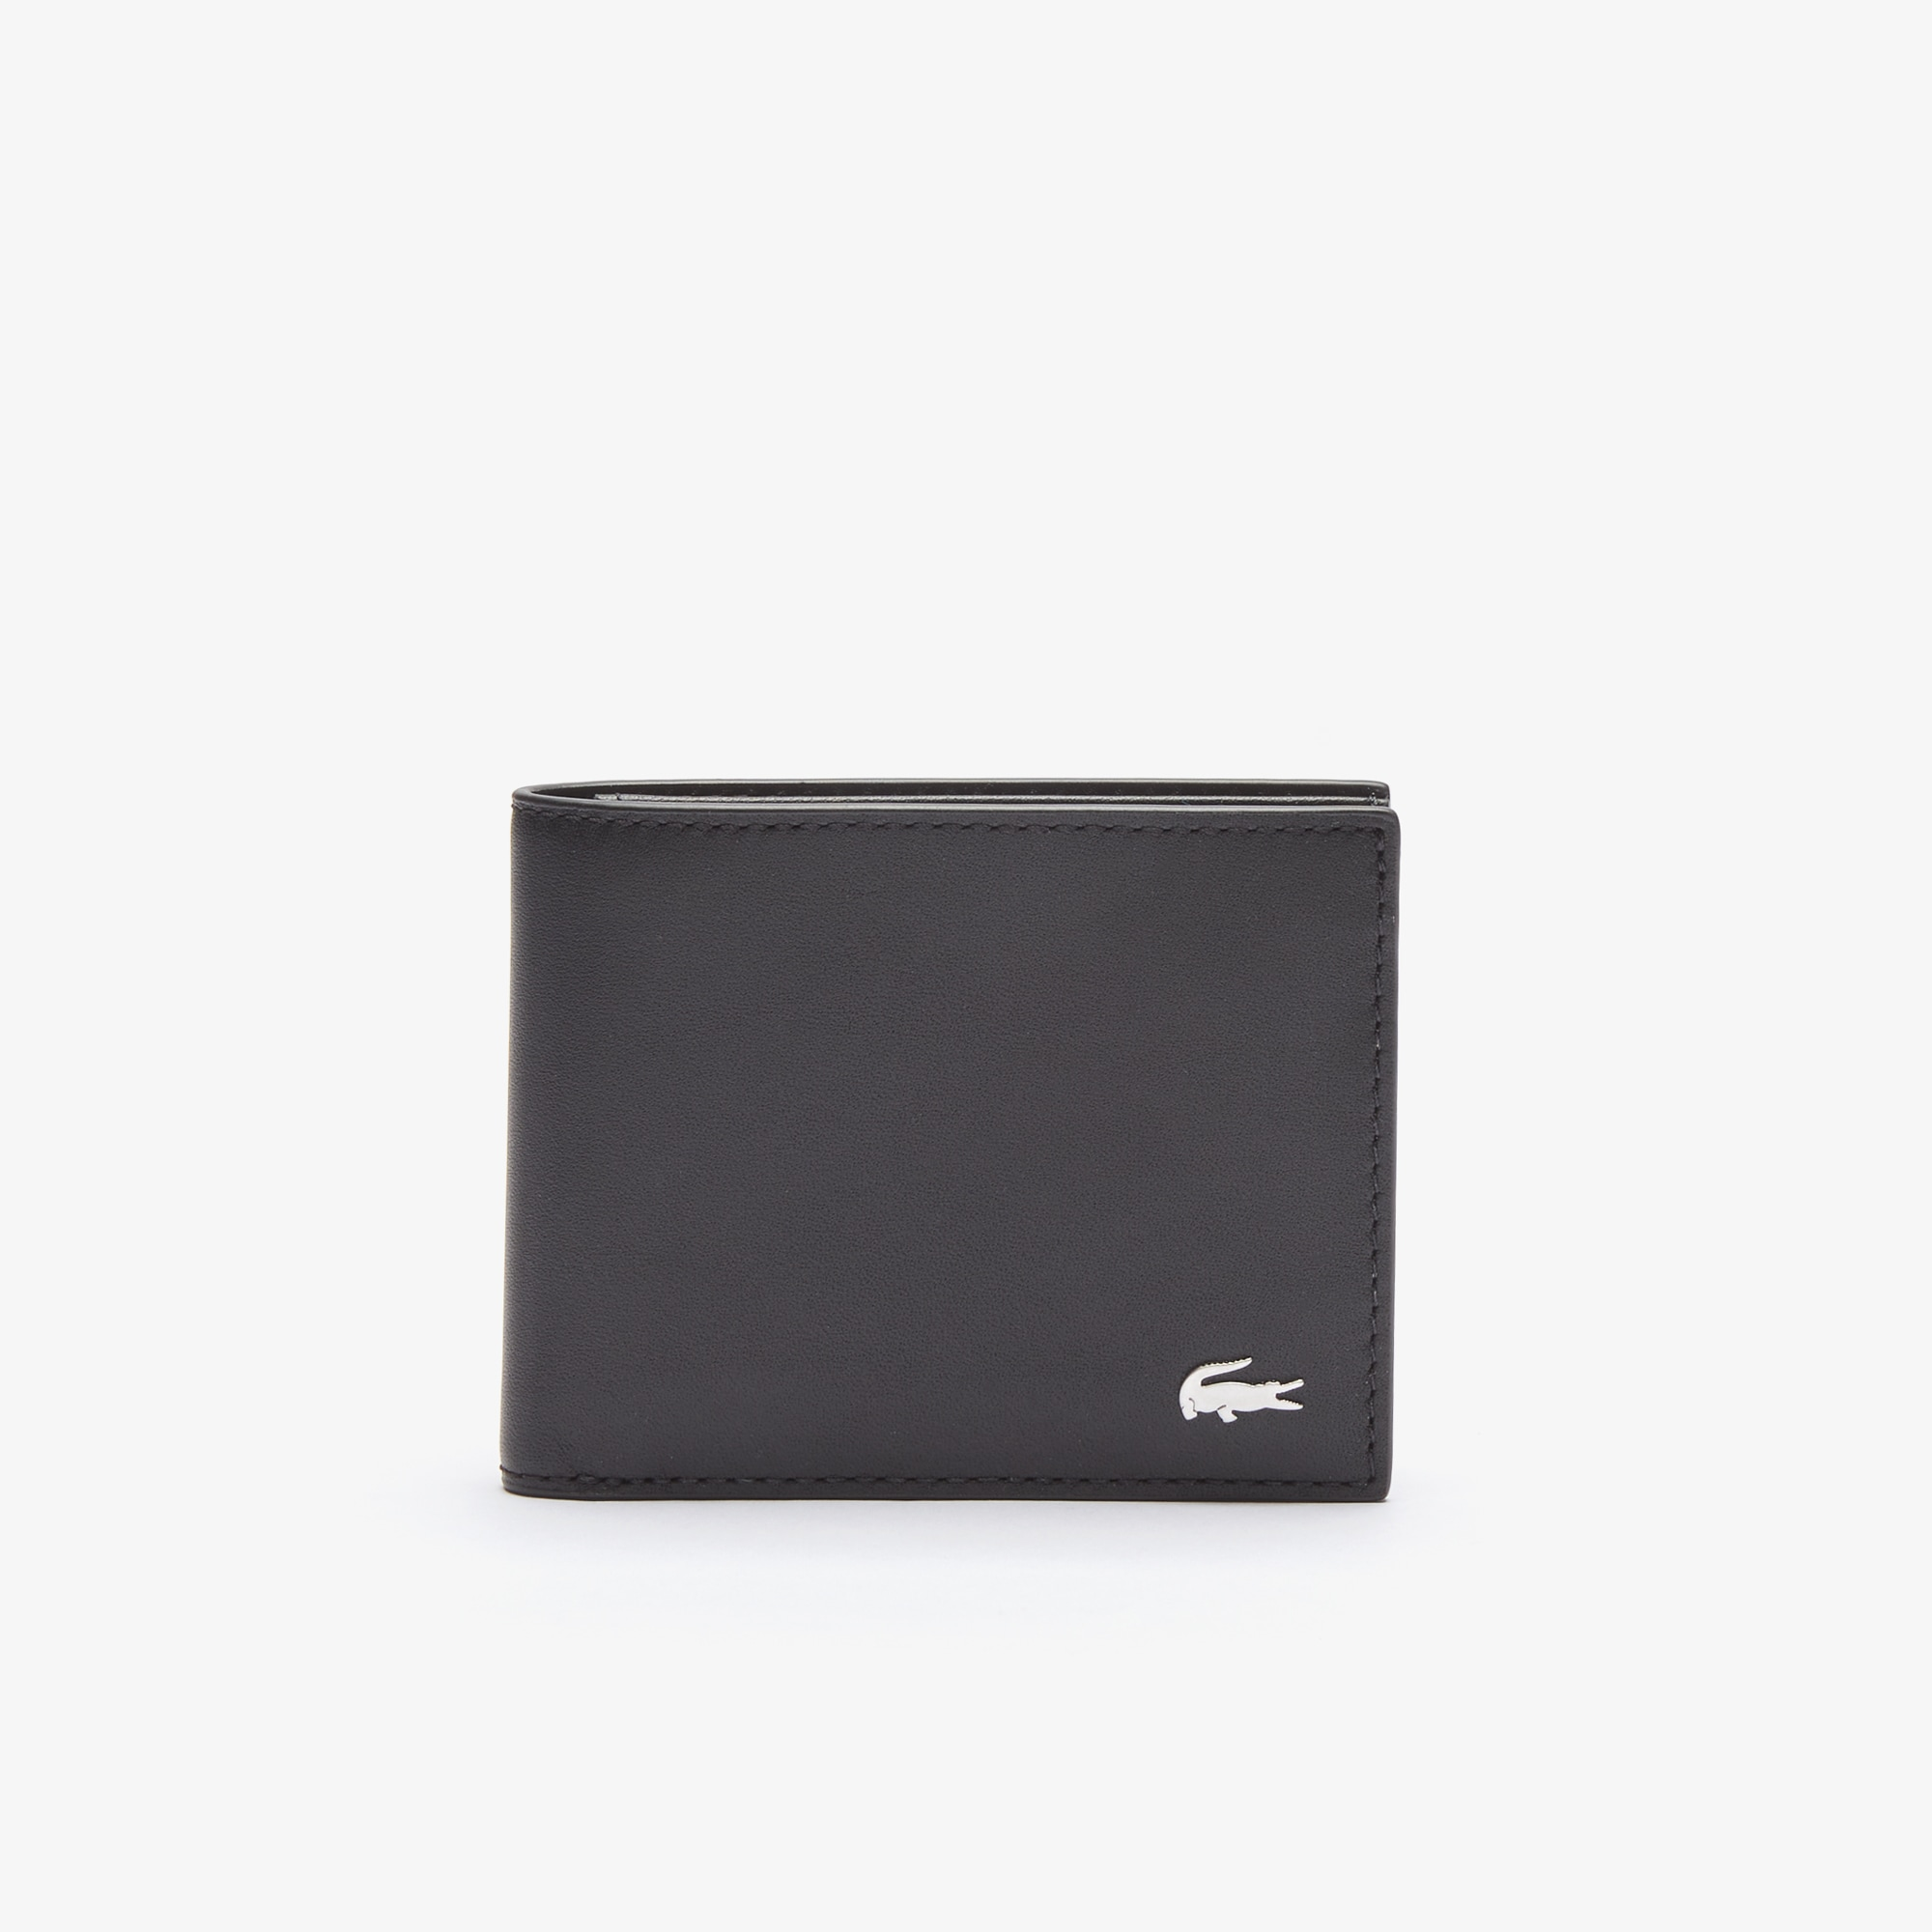 212560dfa2c3 Small Leather Goods - Wallets